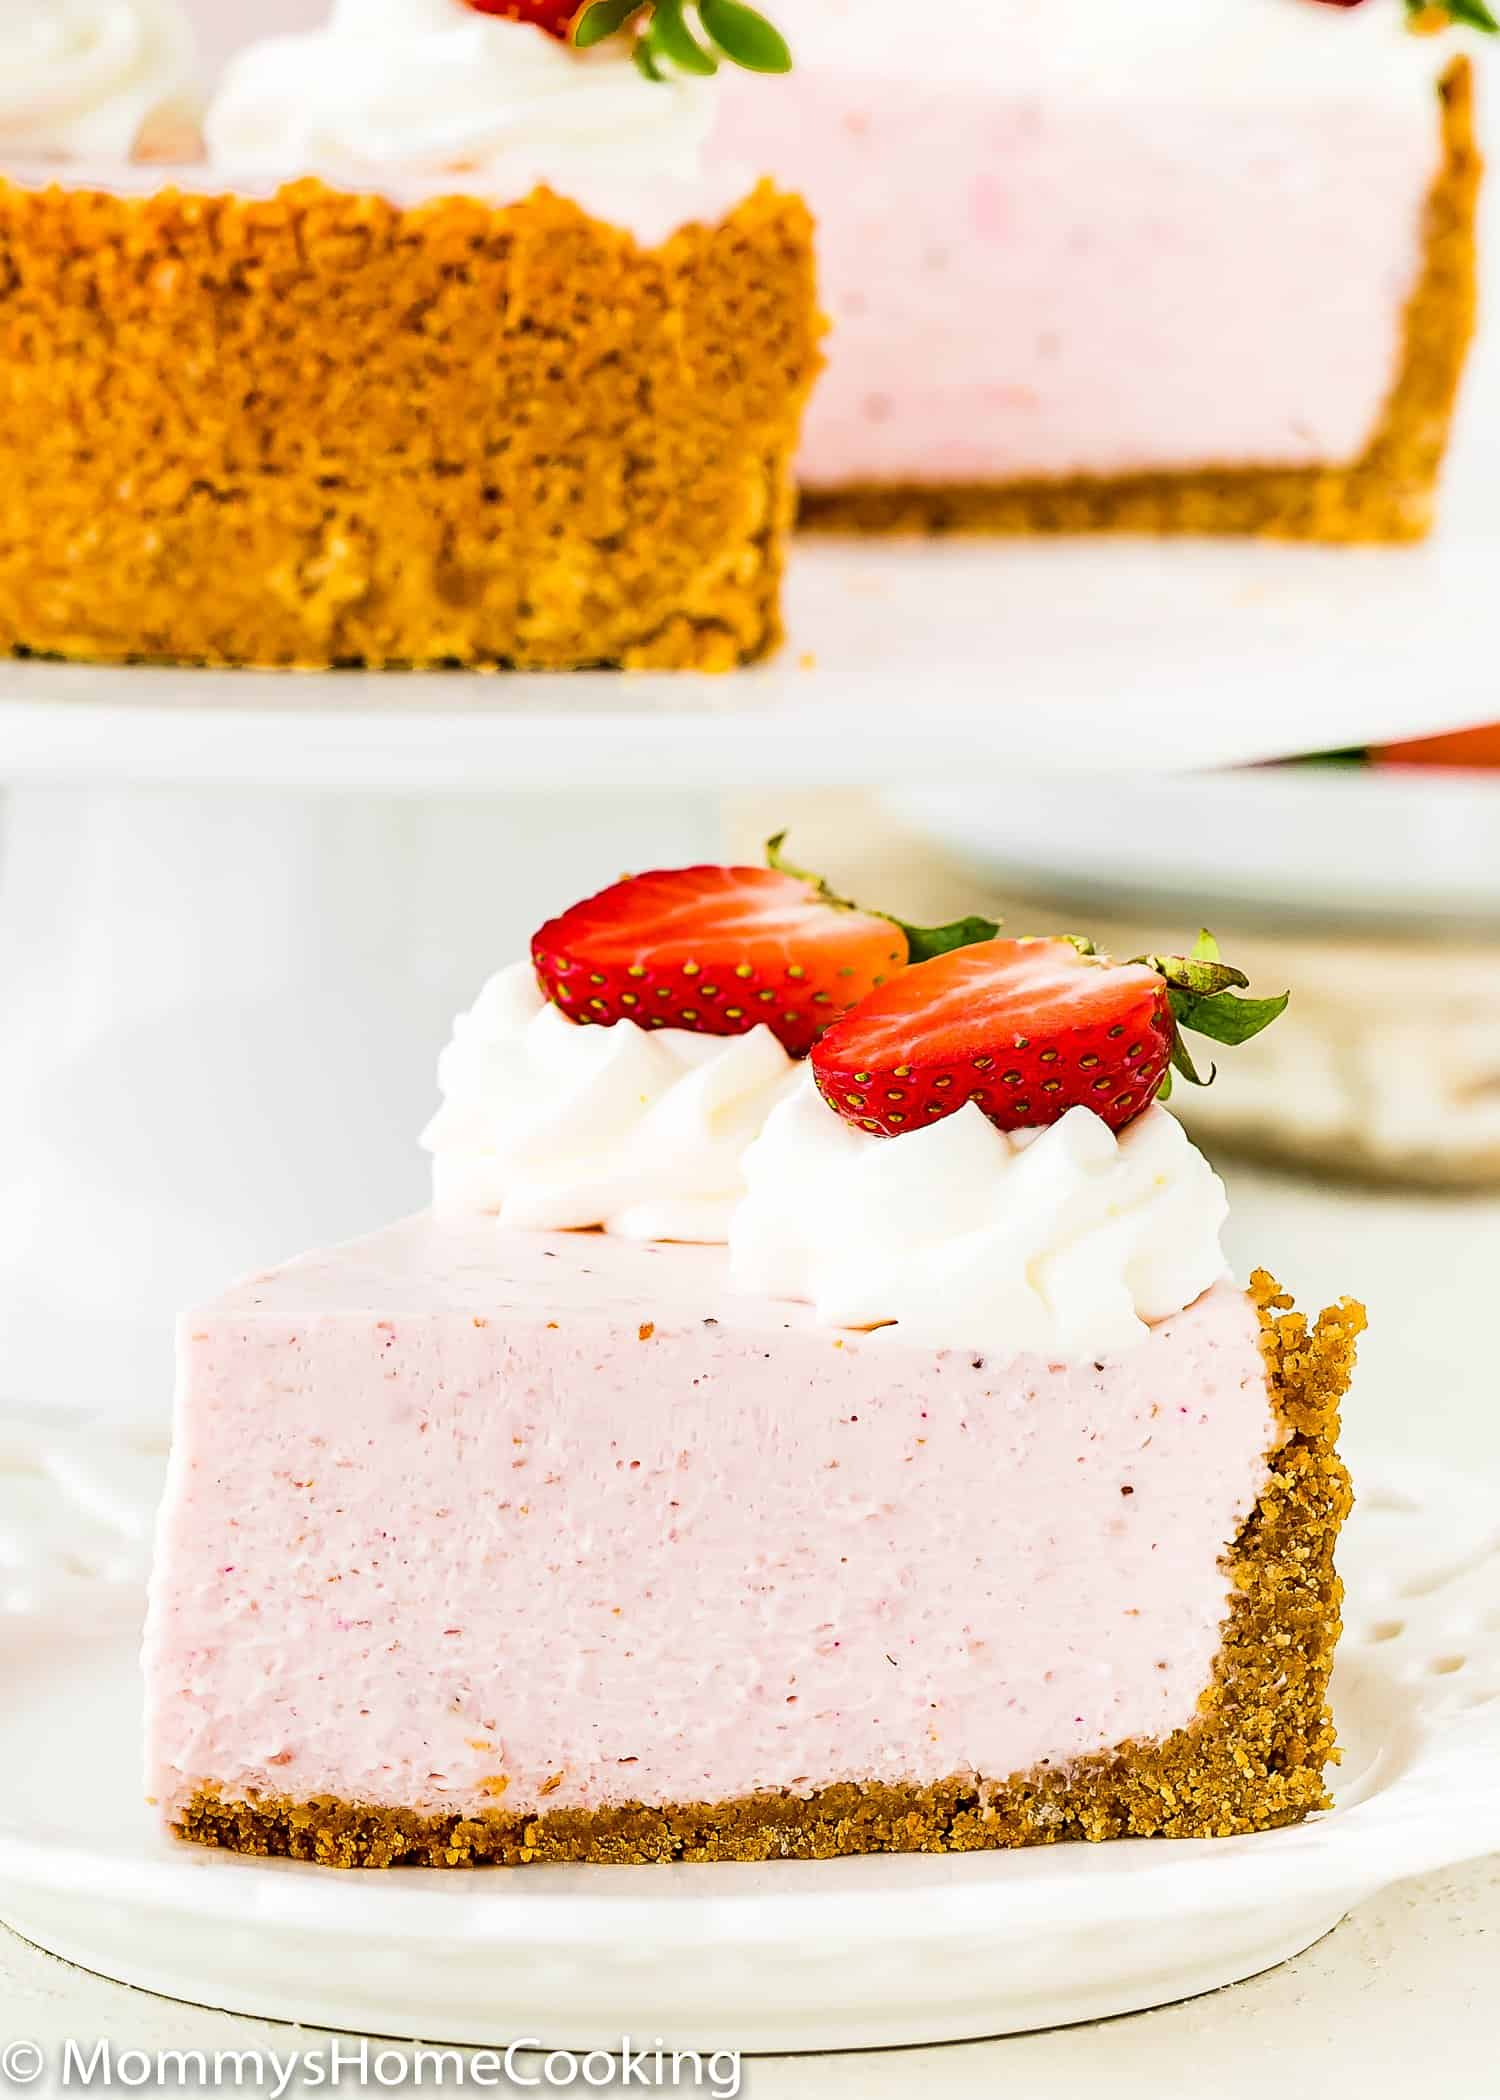 Strawberry Cheesecake slice with graham cracker crust